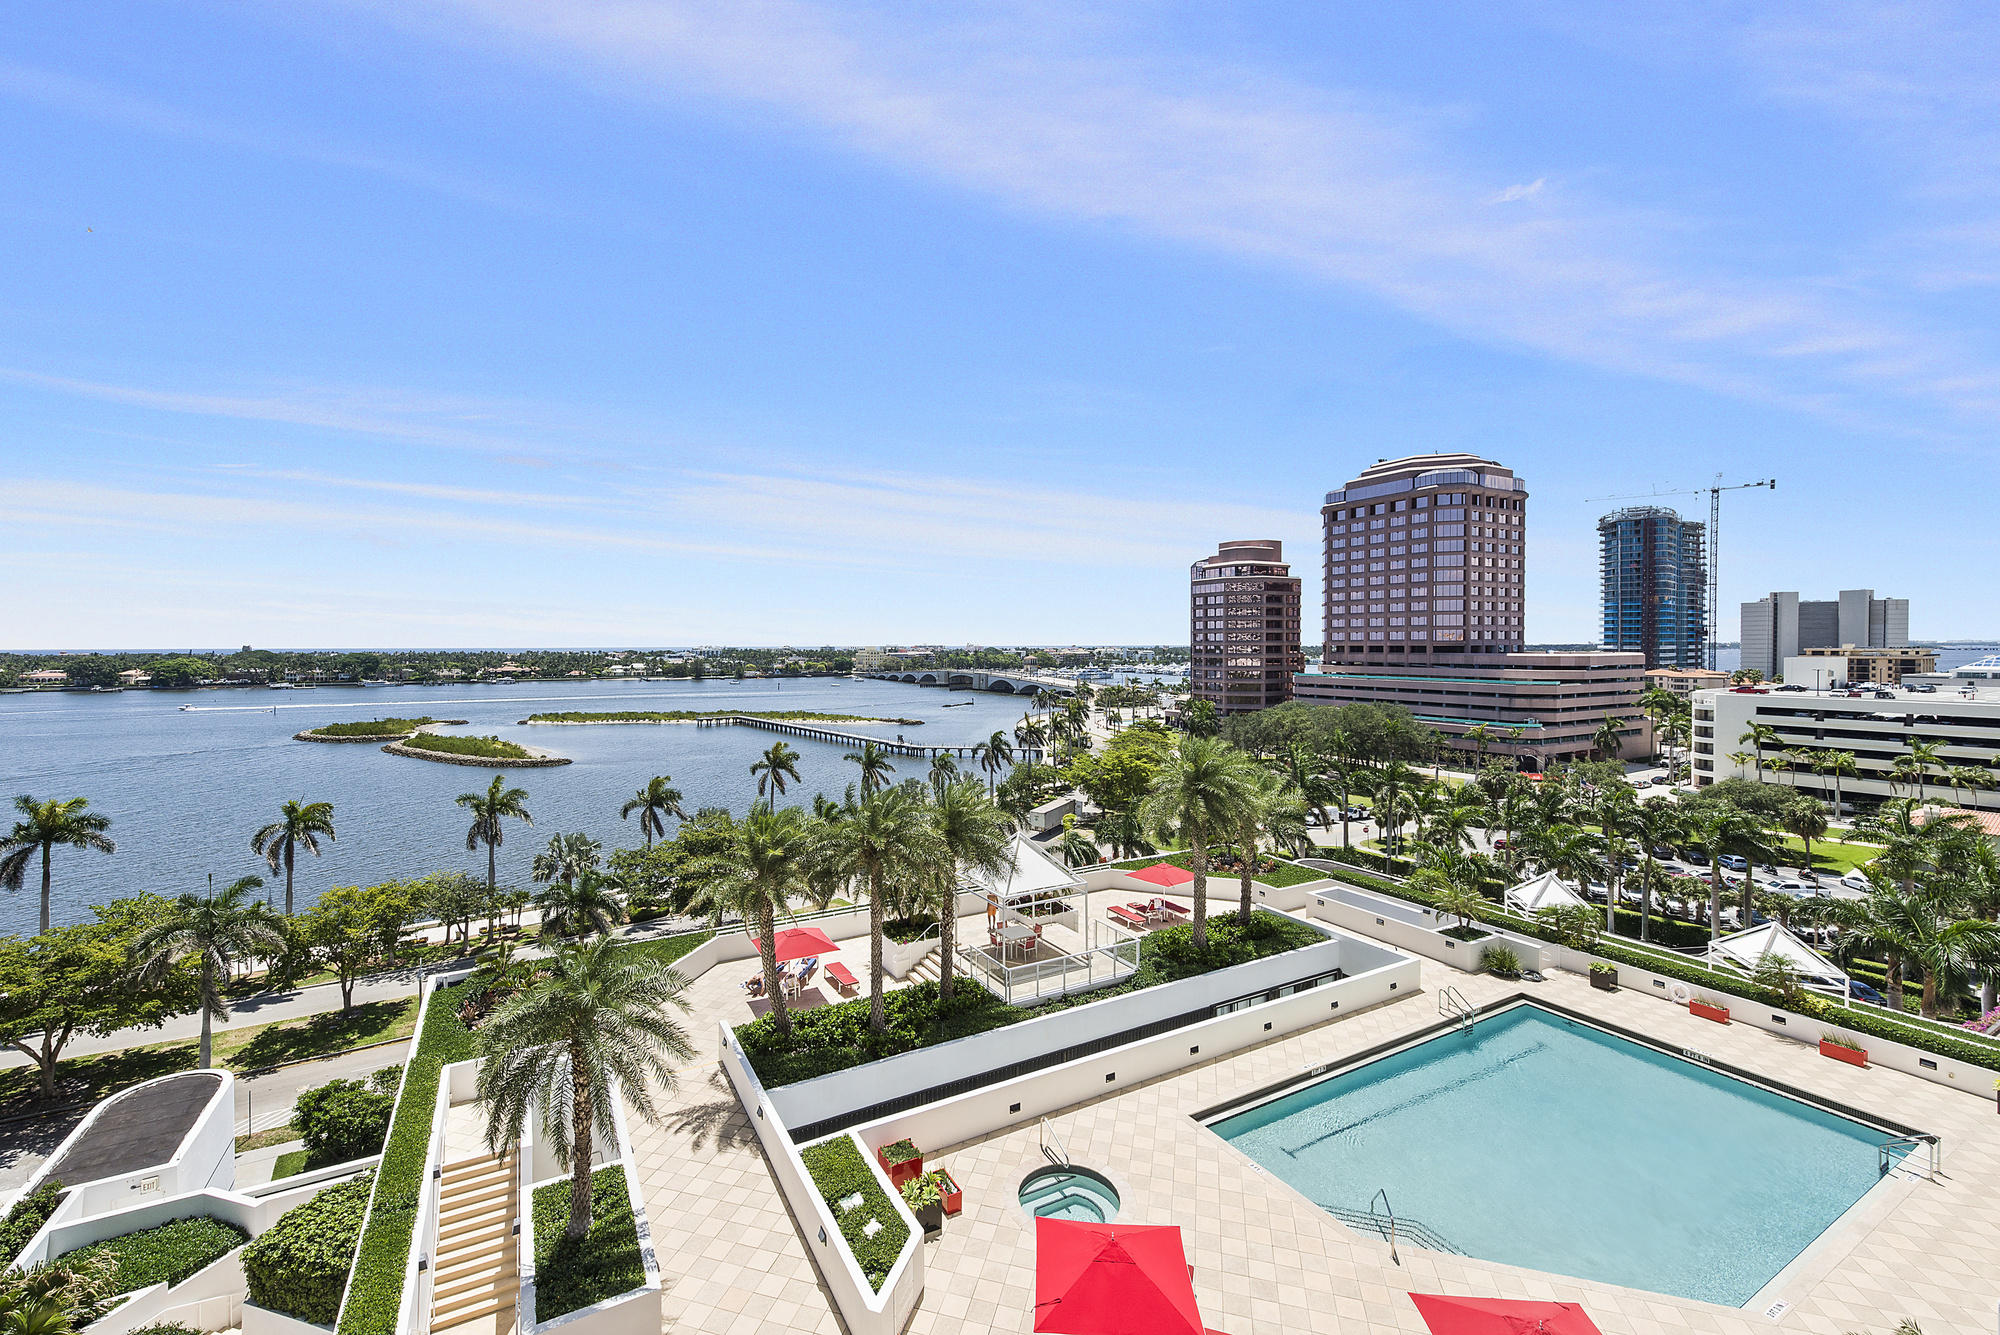 TRUMP PLAZA OF THE PALM BEACHES COND  UNIT 9B